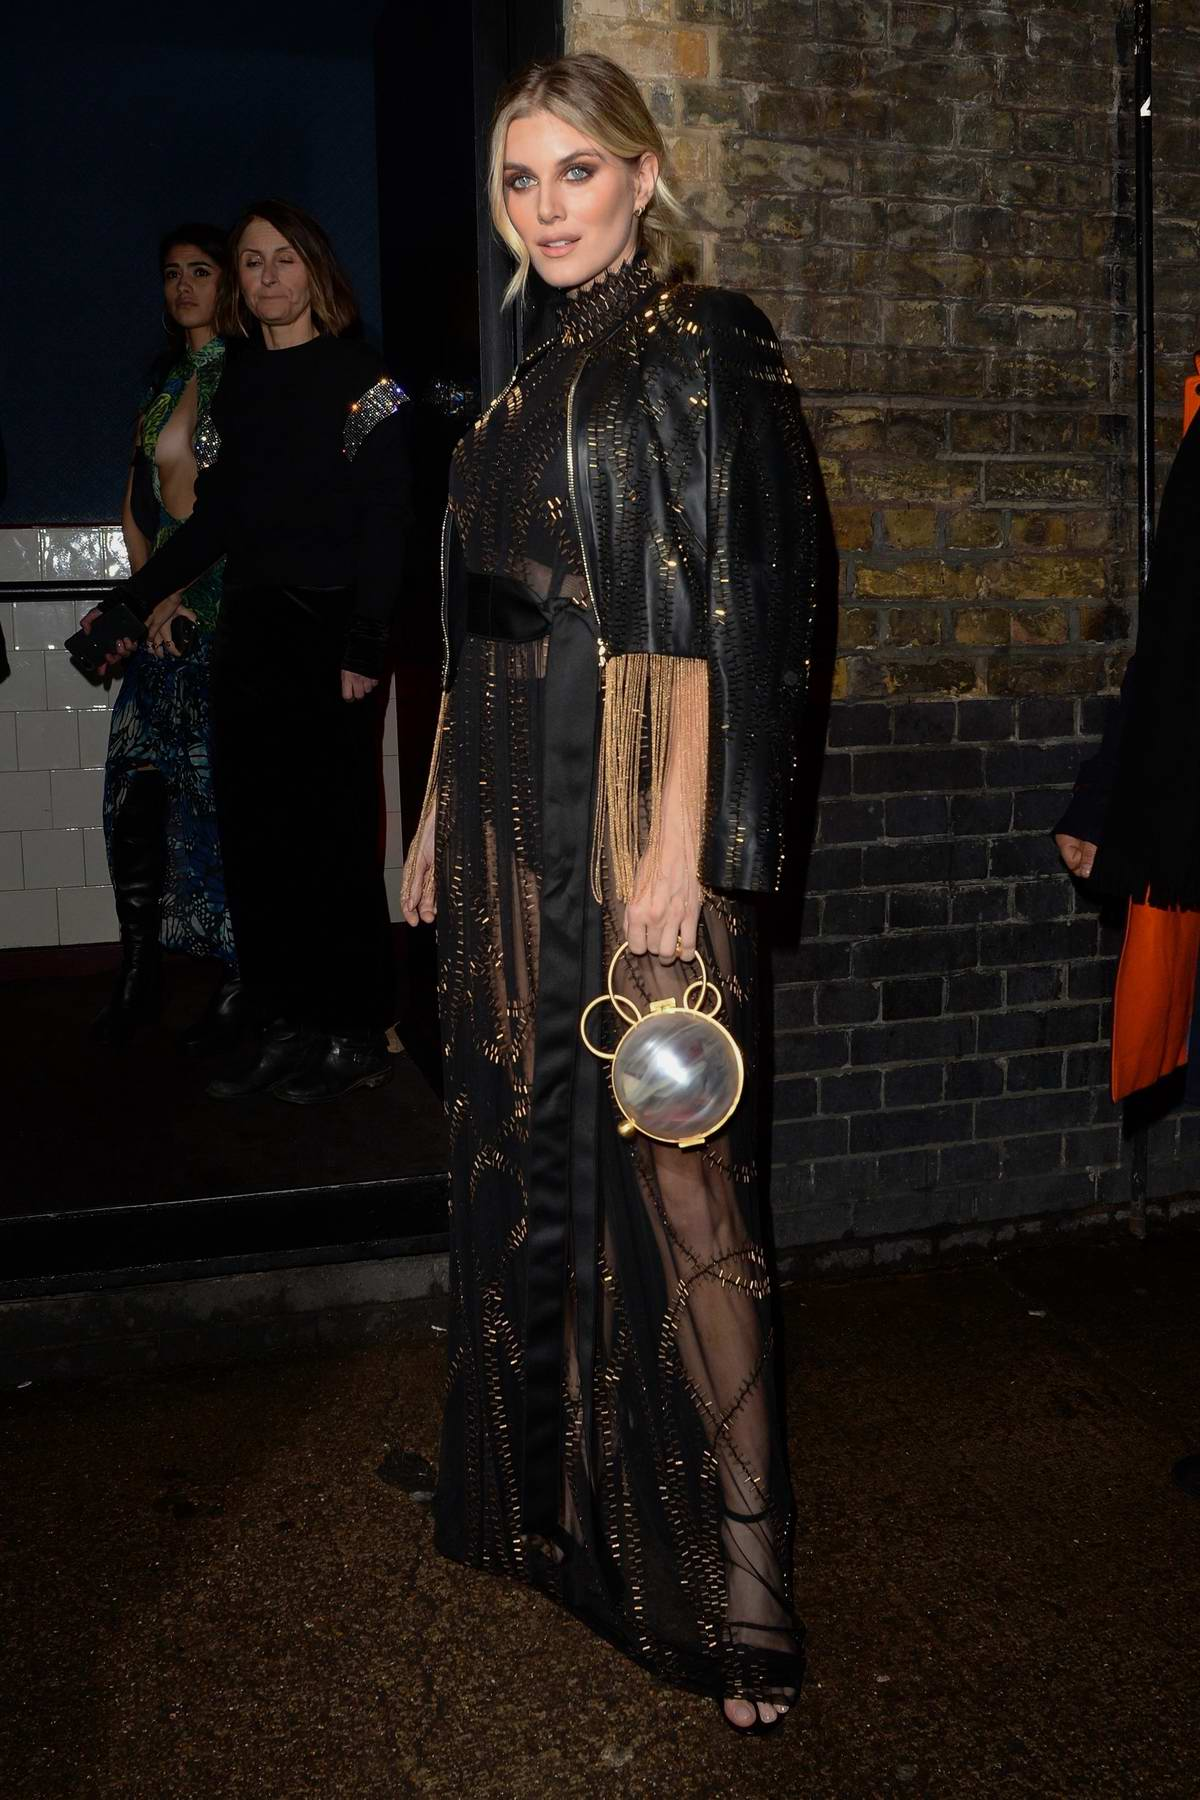 Ashley James attends the BRIT Awards 2020 after-party at Chiltern Firehouse in London, UK